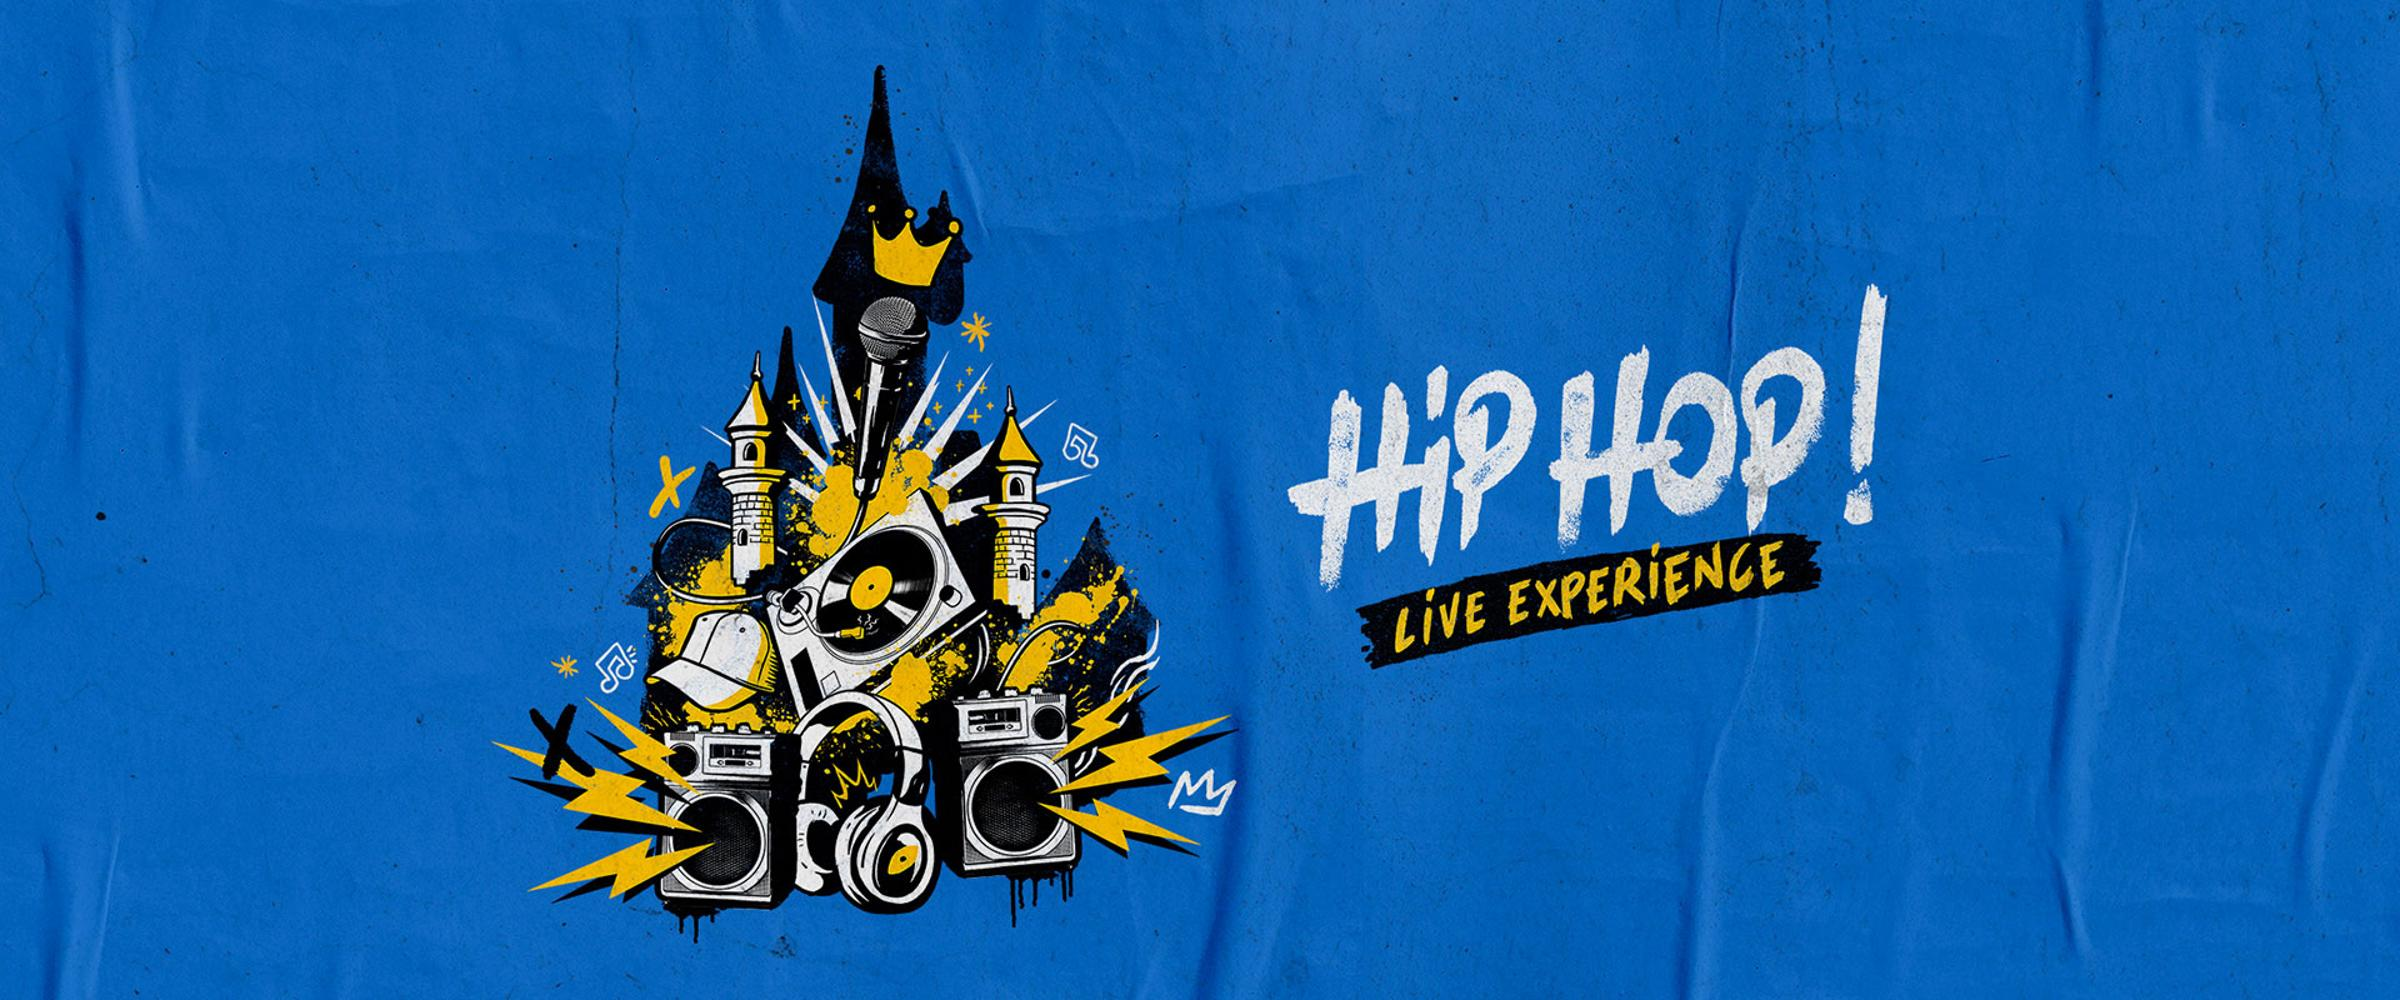 hd14482_2021mar17_world_dlp-hiphop-live-experience-2019-key-visual-bis_5-2_tcm792-188616-2400x1000.jpg